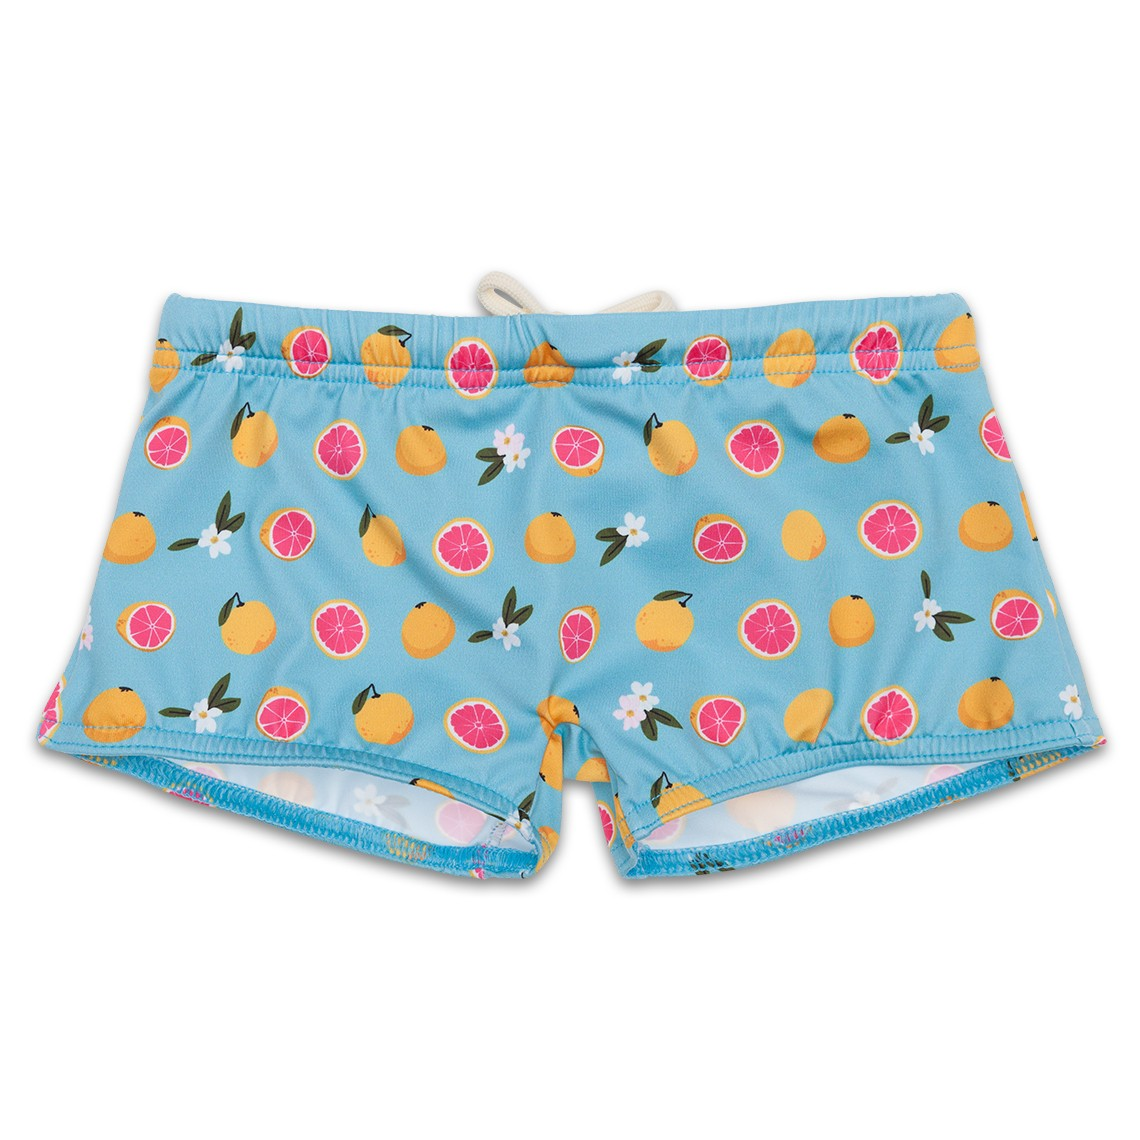 Boy Swimsuit Light Blue Grapefruit 1 year